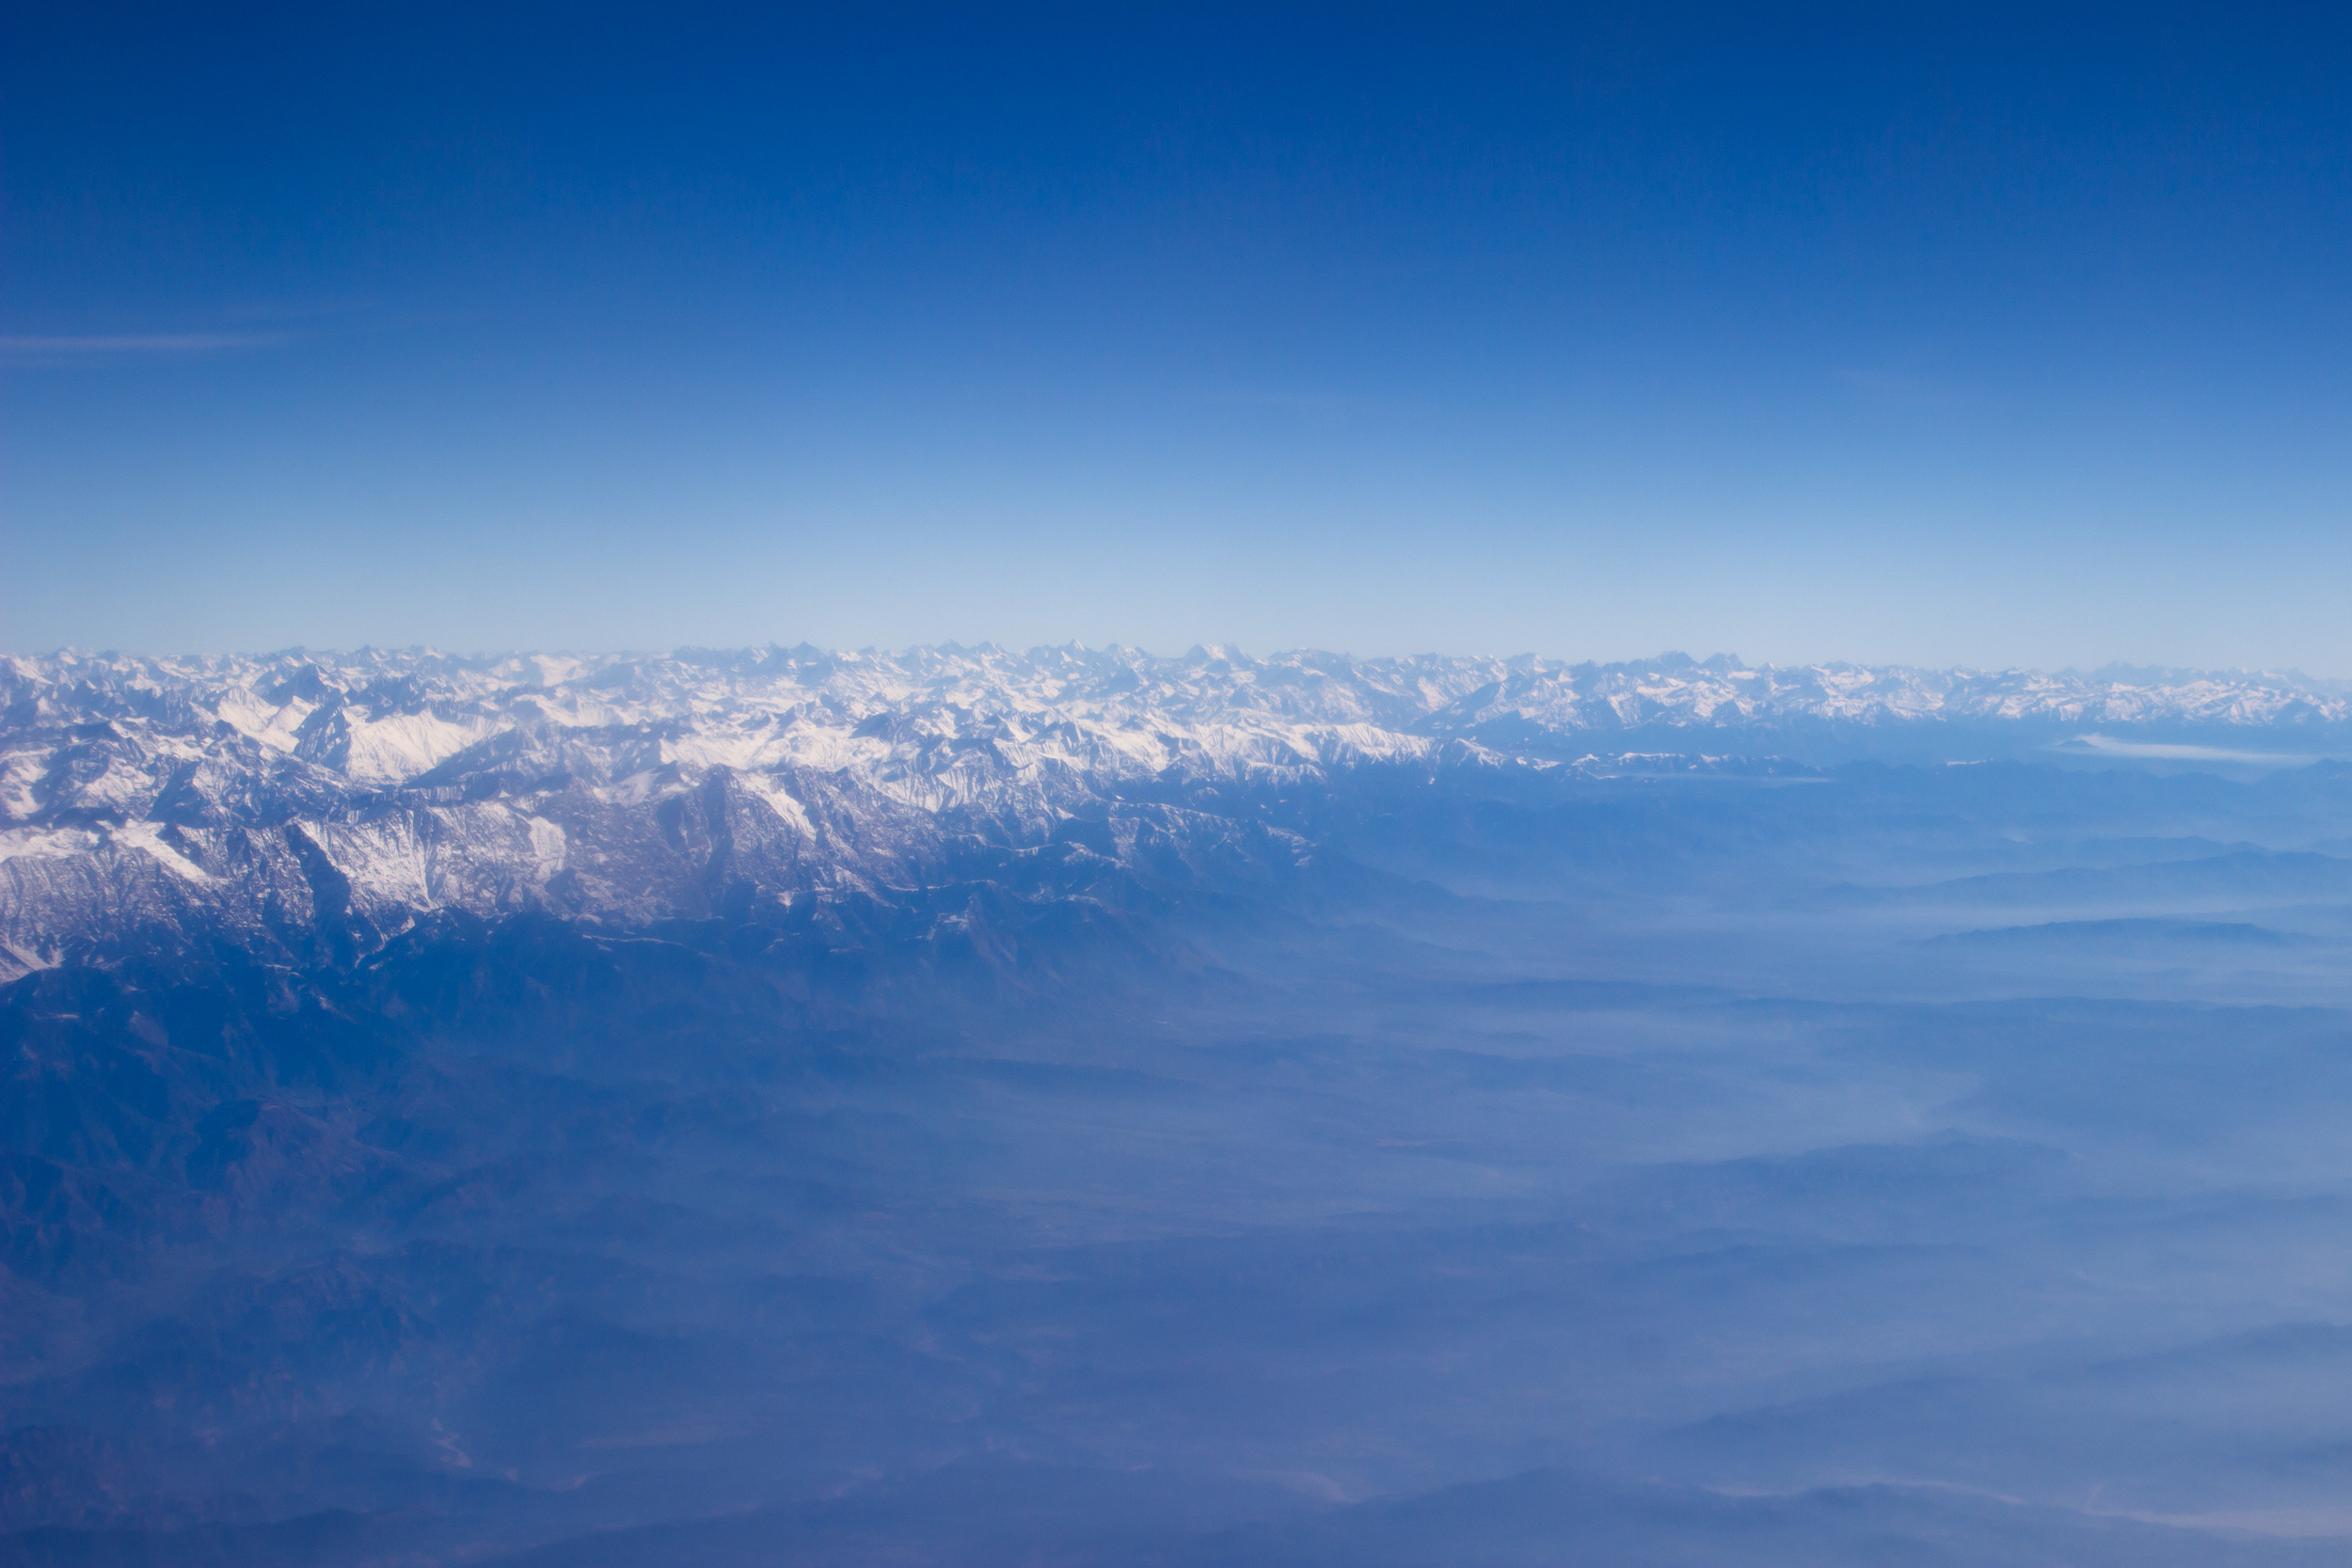 A glimpse of the Himalayas from the airplane, India